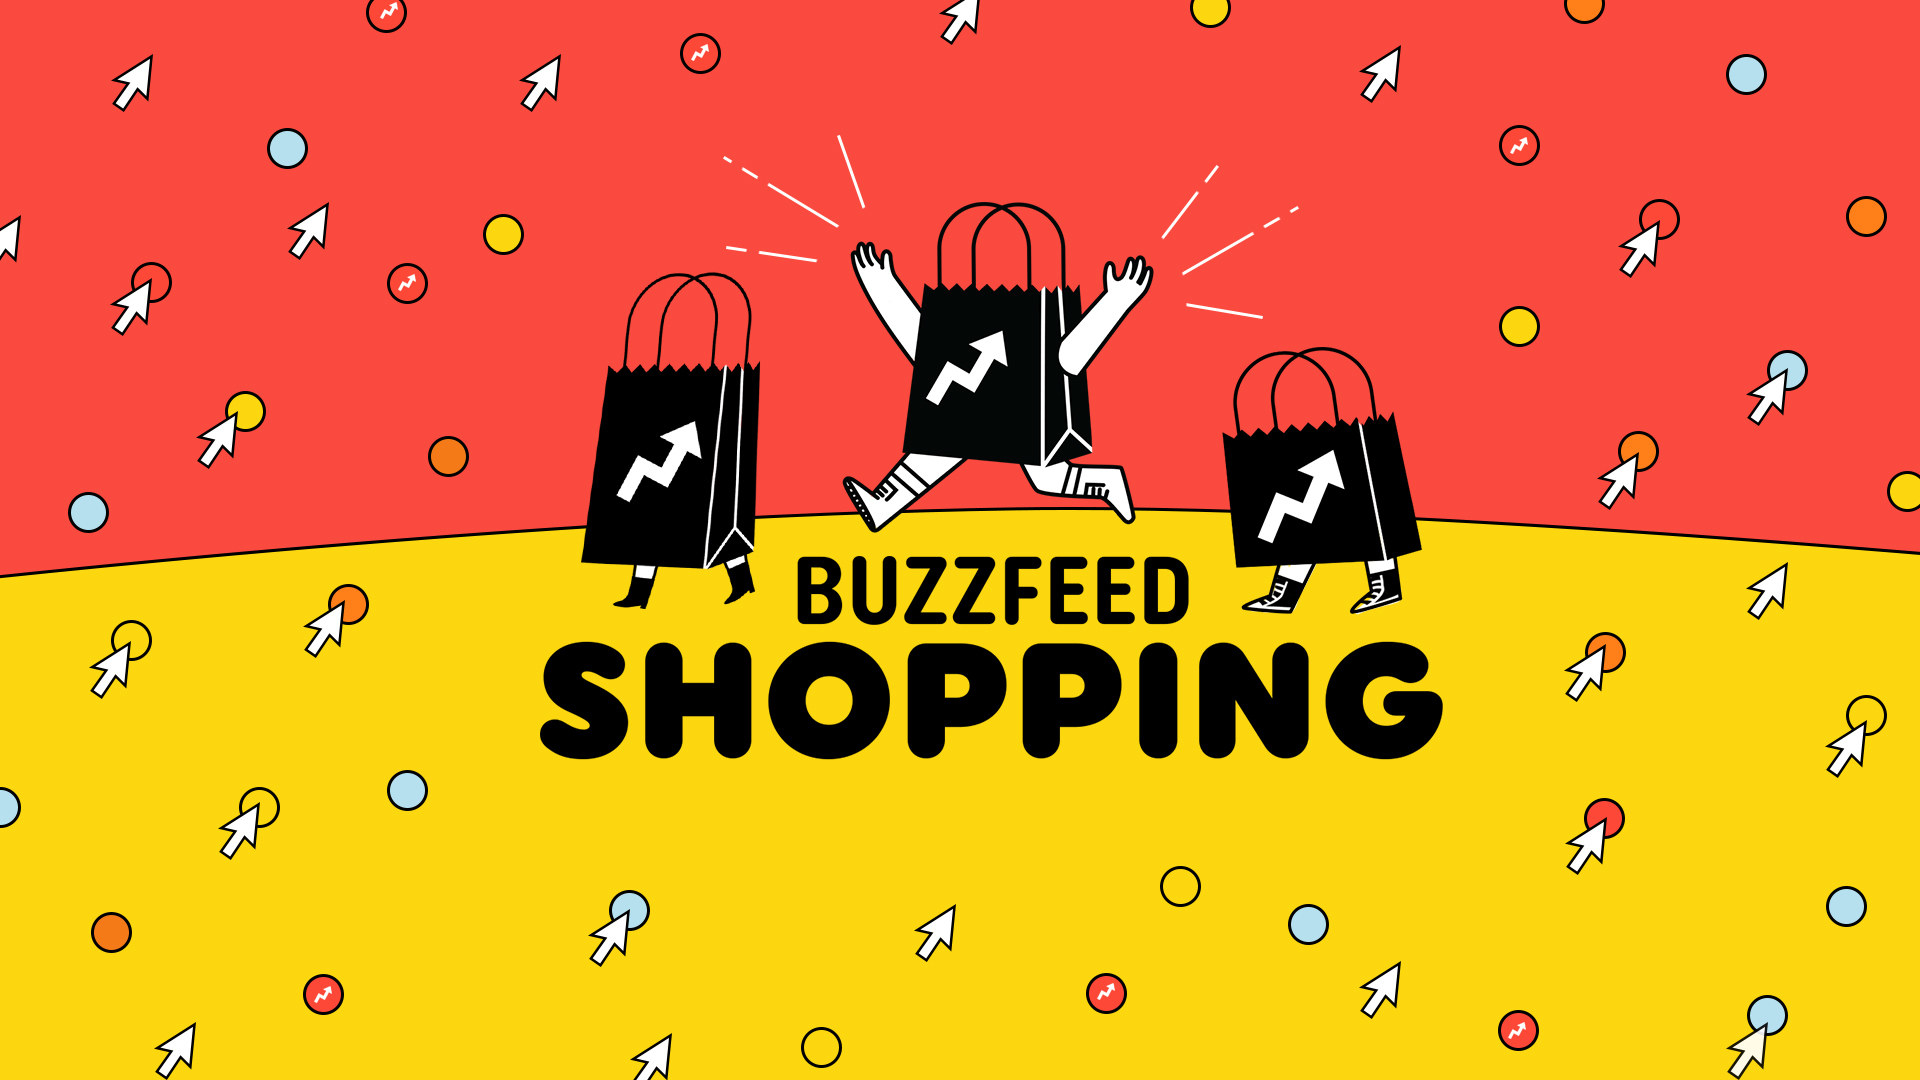 The BuzzFeed Shopping logo featuring an illustration of dancing shopping bags